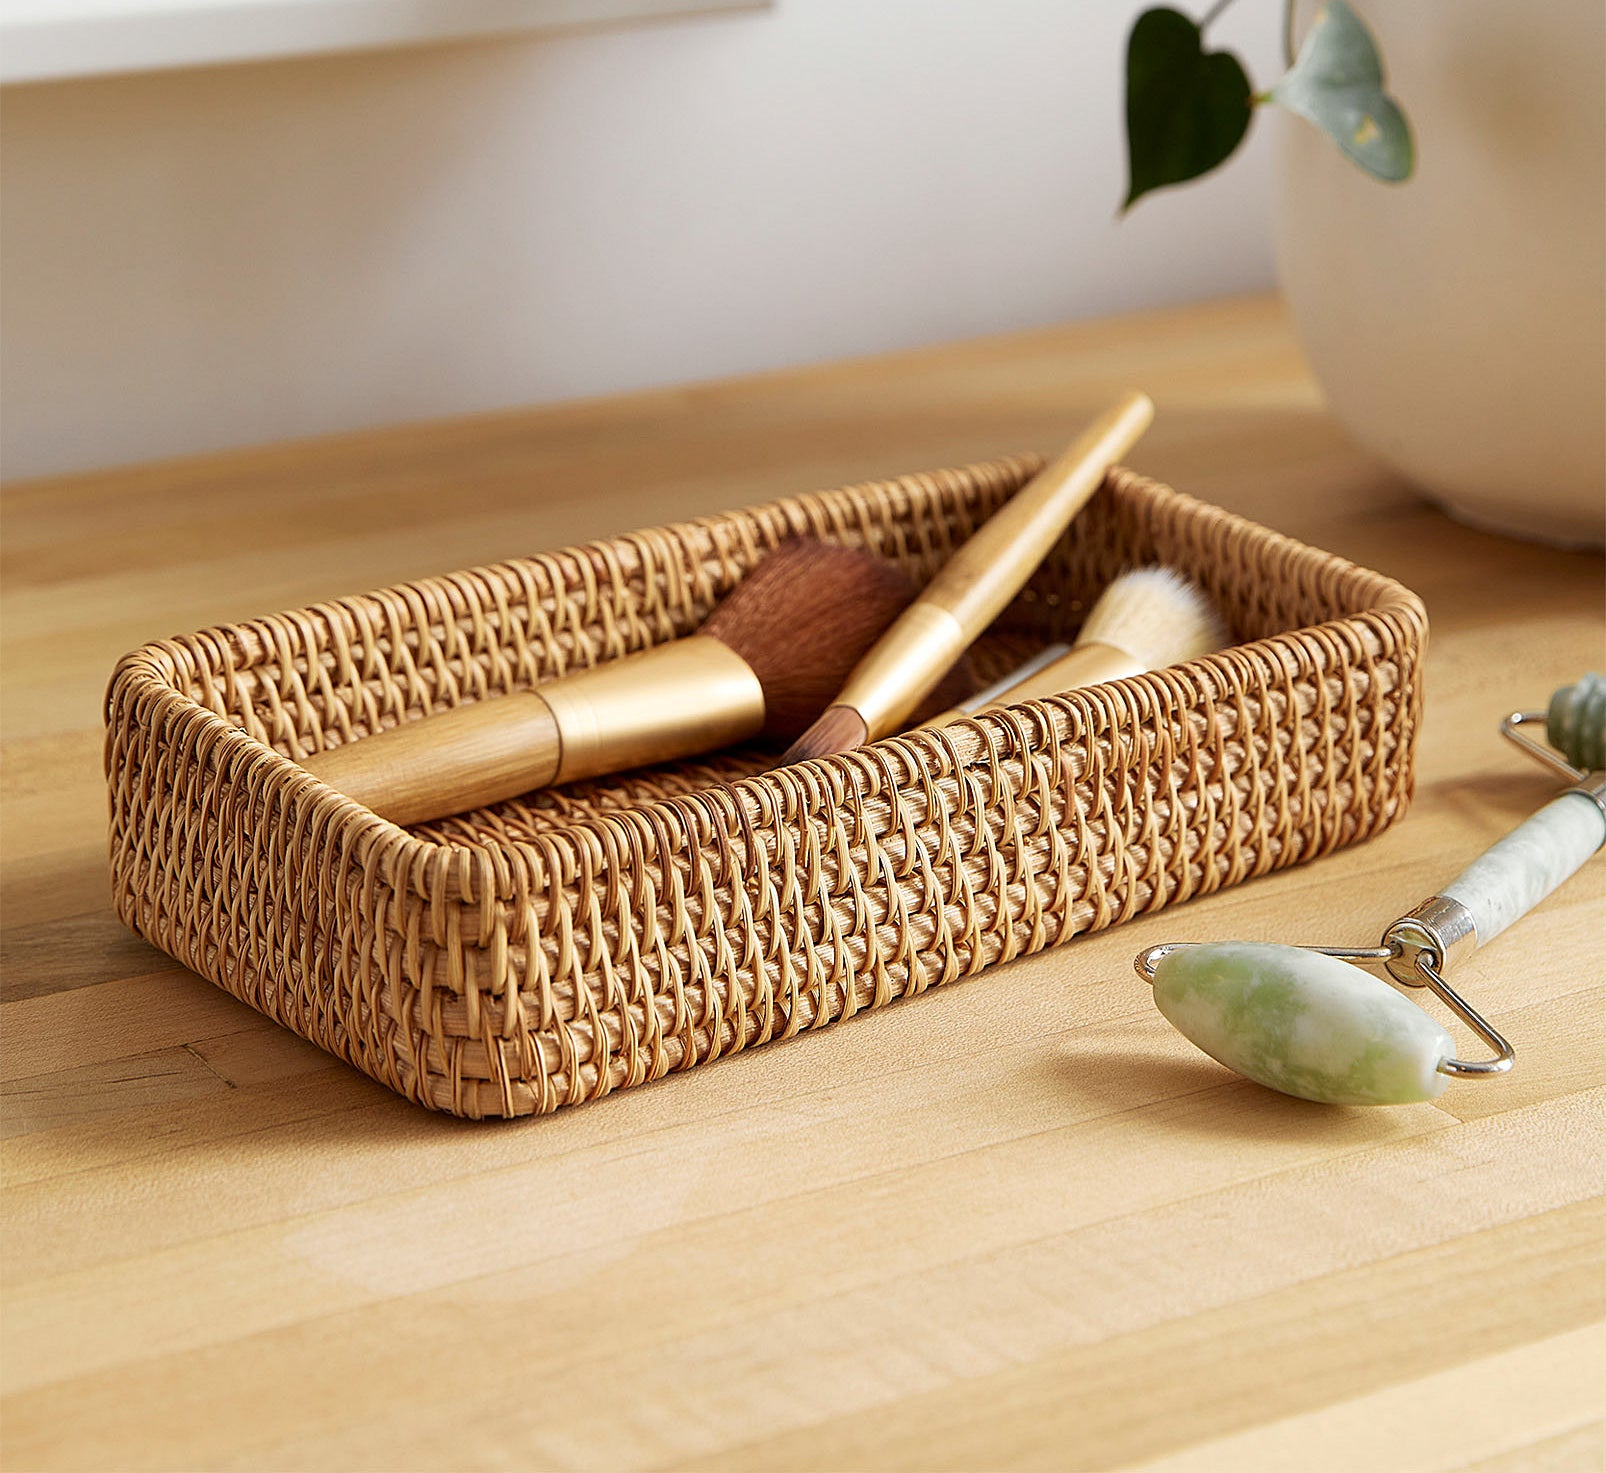 A small basket with three makeup brushes